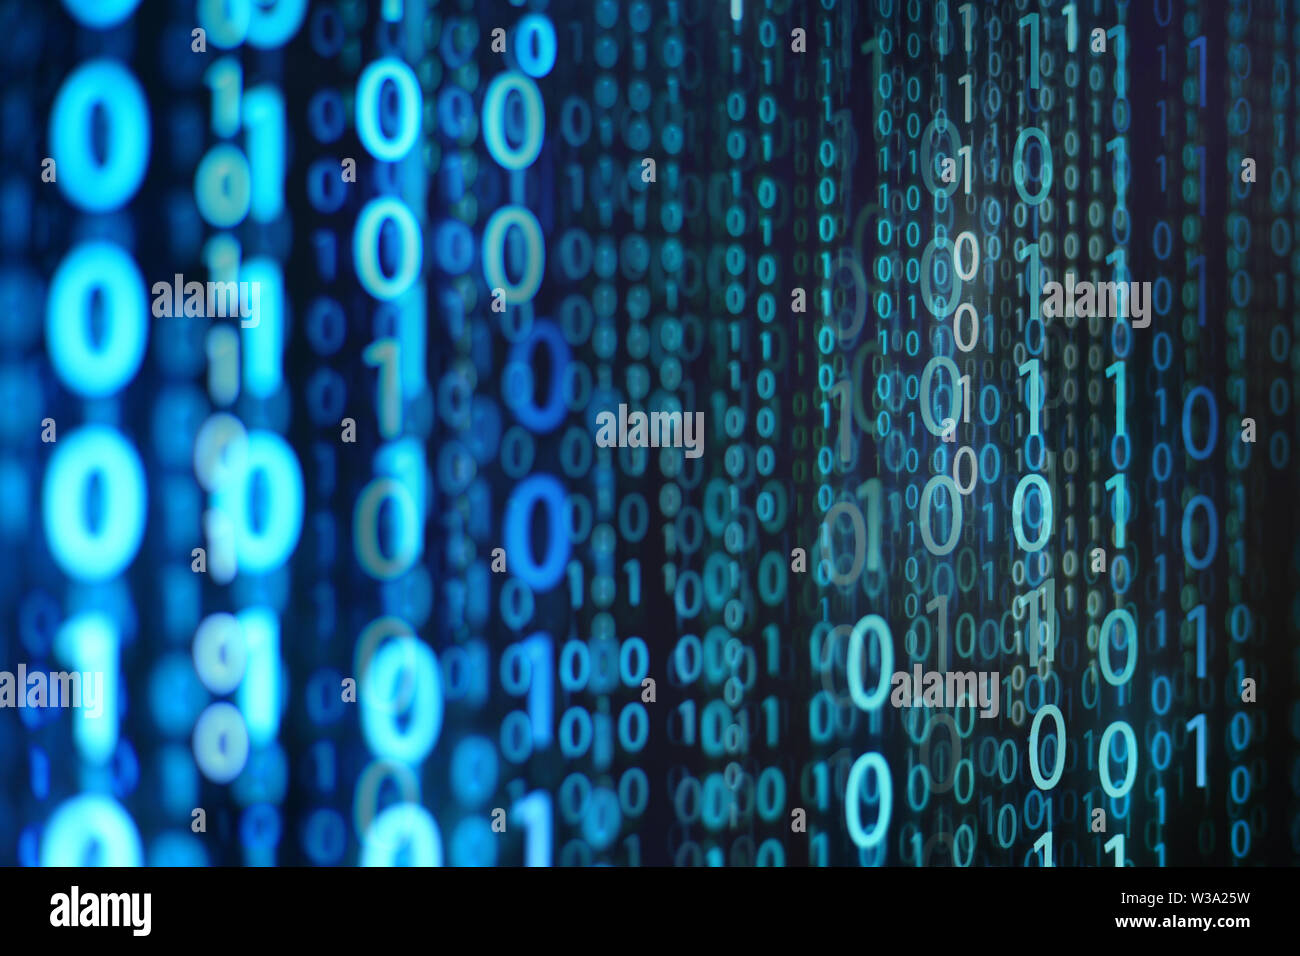 blue binary background. computer language matrix. multiple exposure photo of LED screen displaying information codes. cyber war and digital data trans - Stock Image